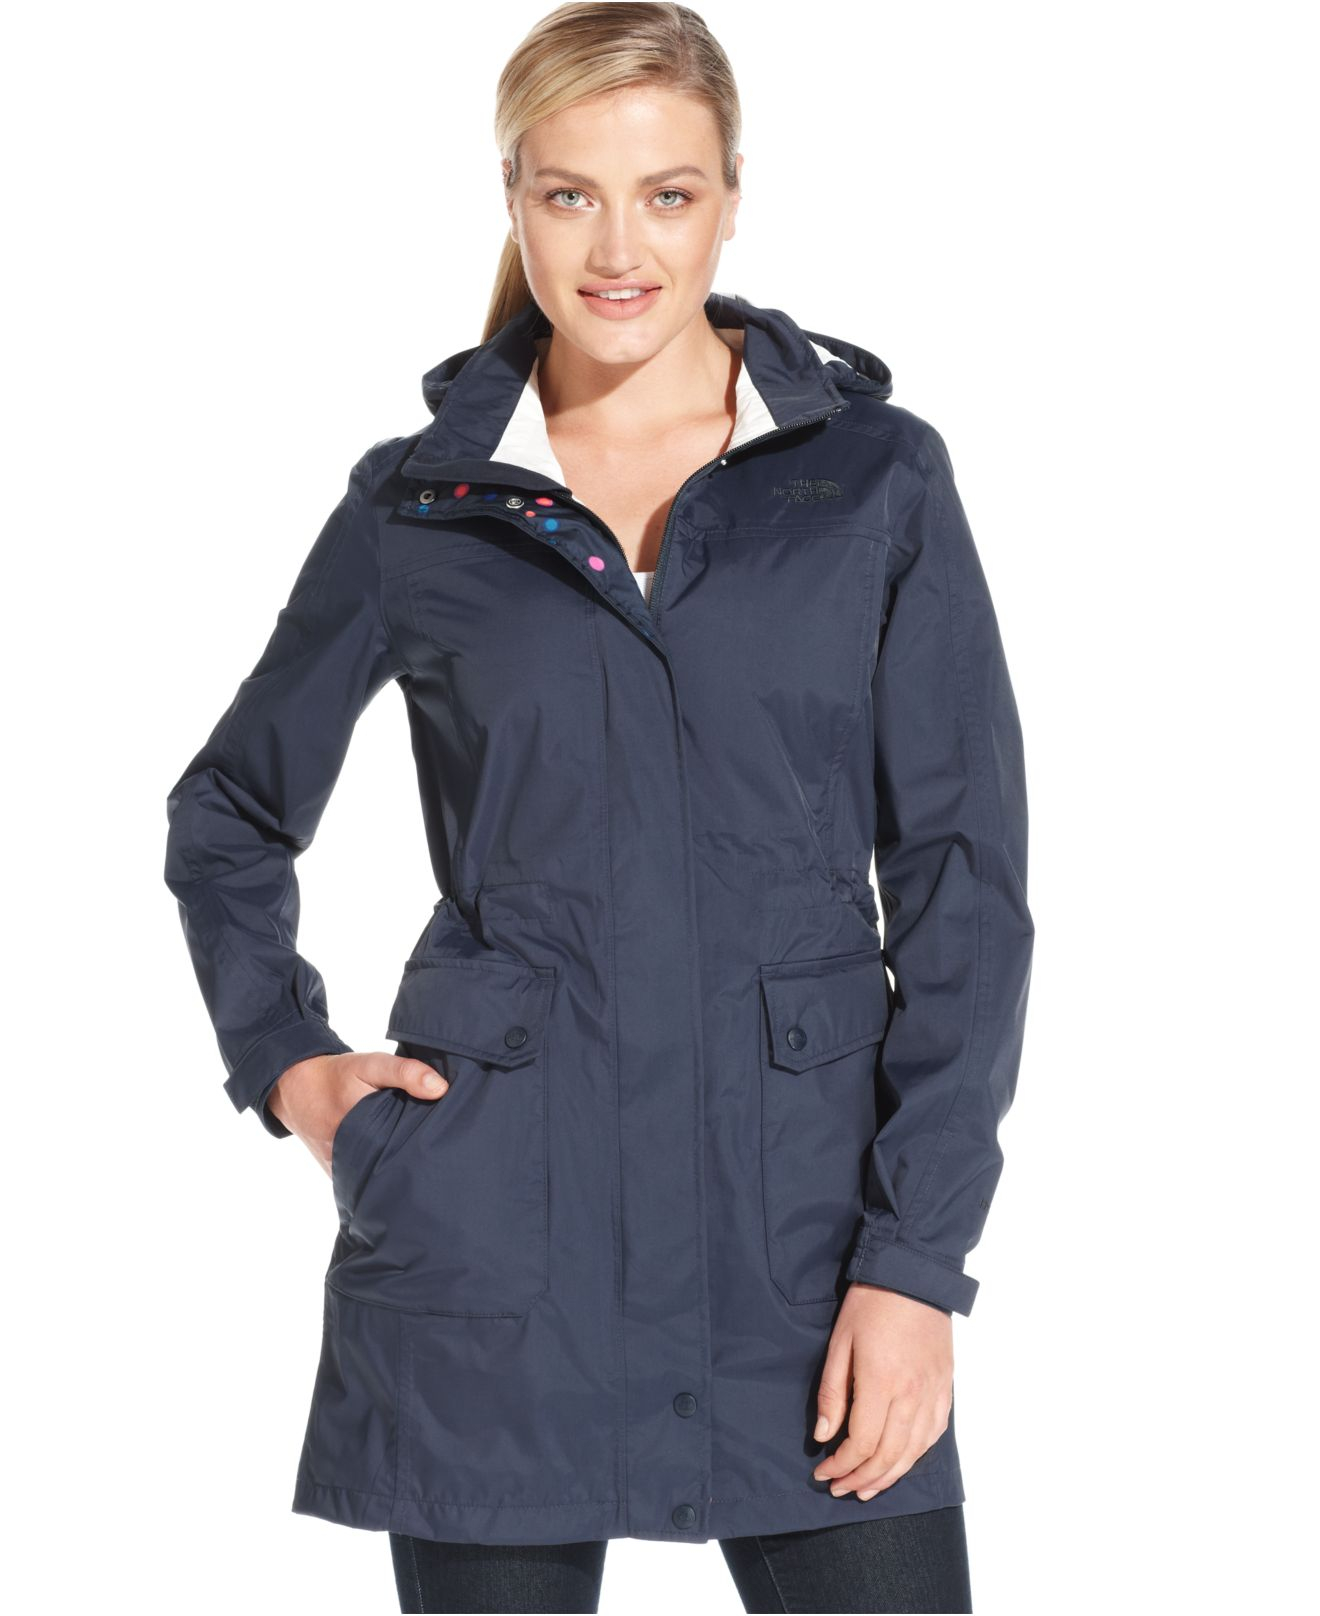 Womens Navy Blue Rain Jacket Jackets Review